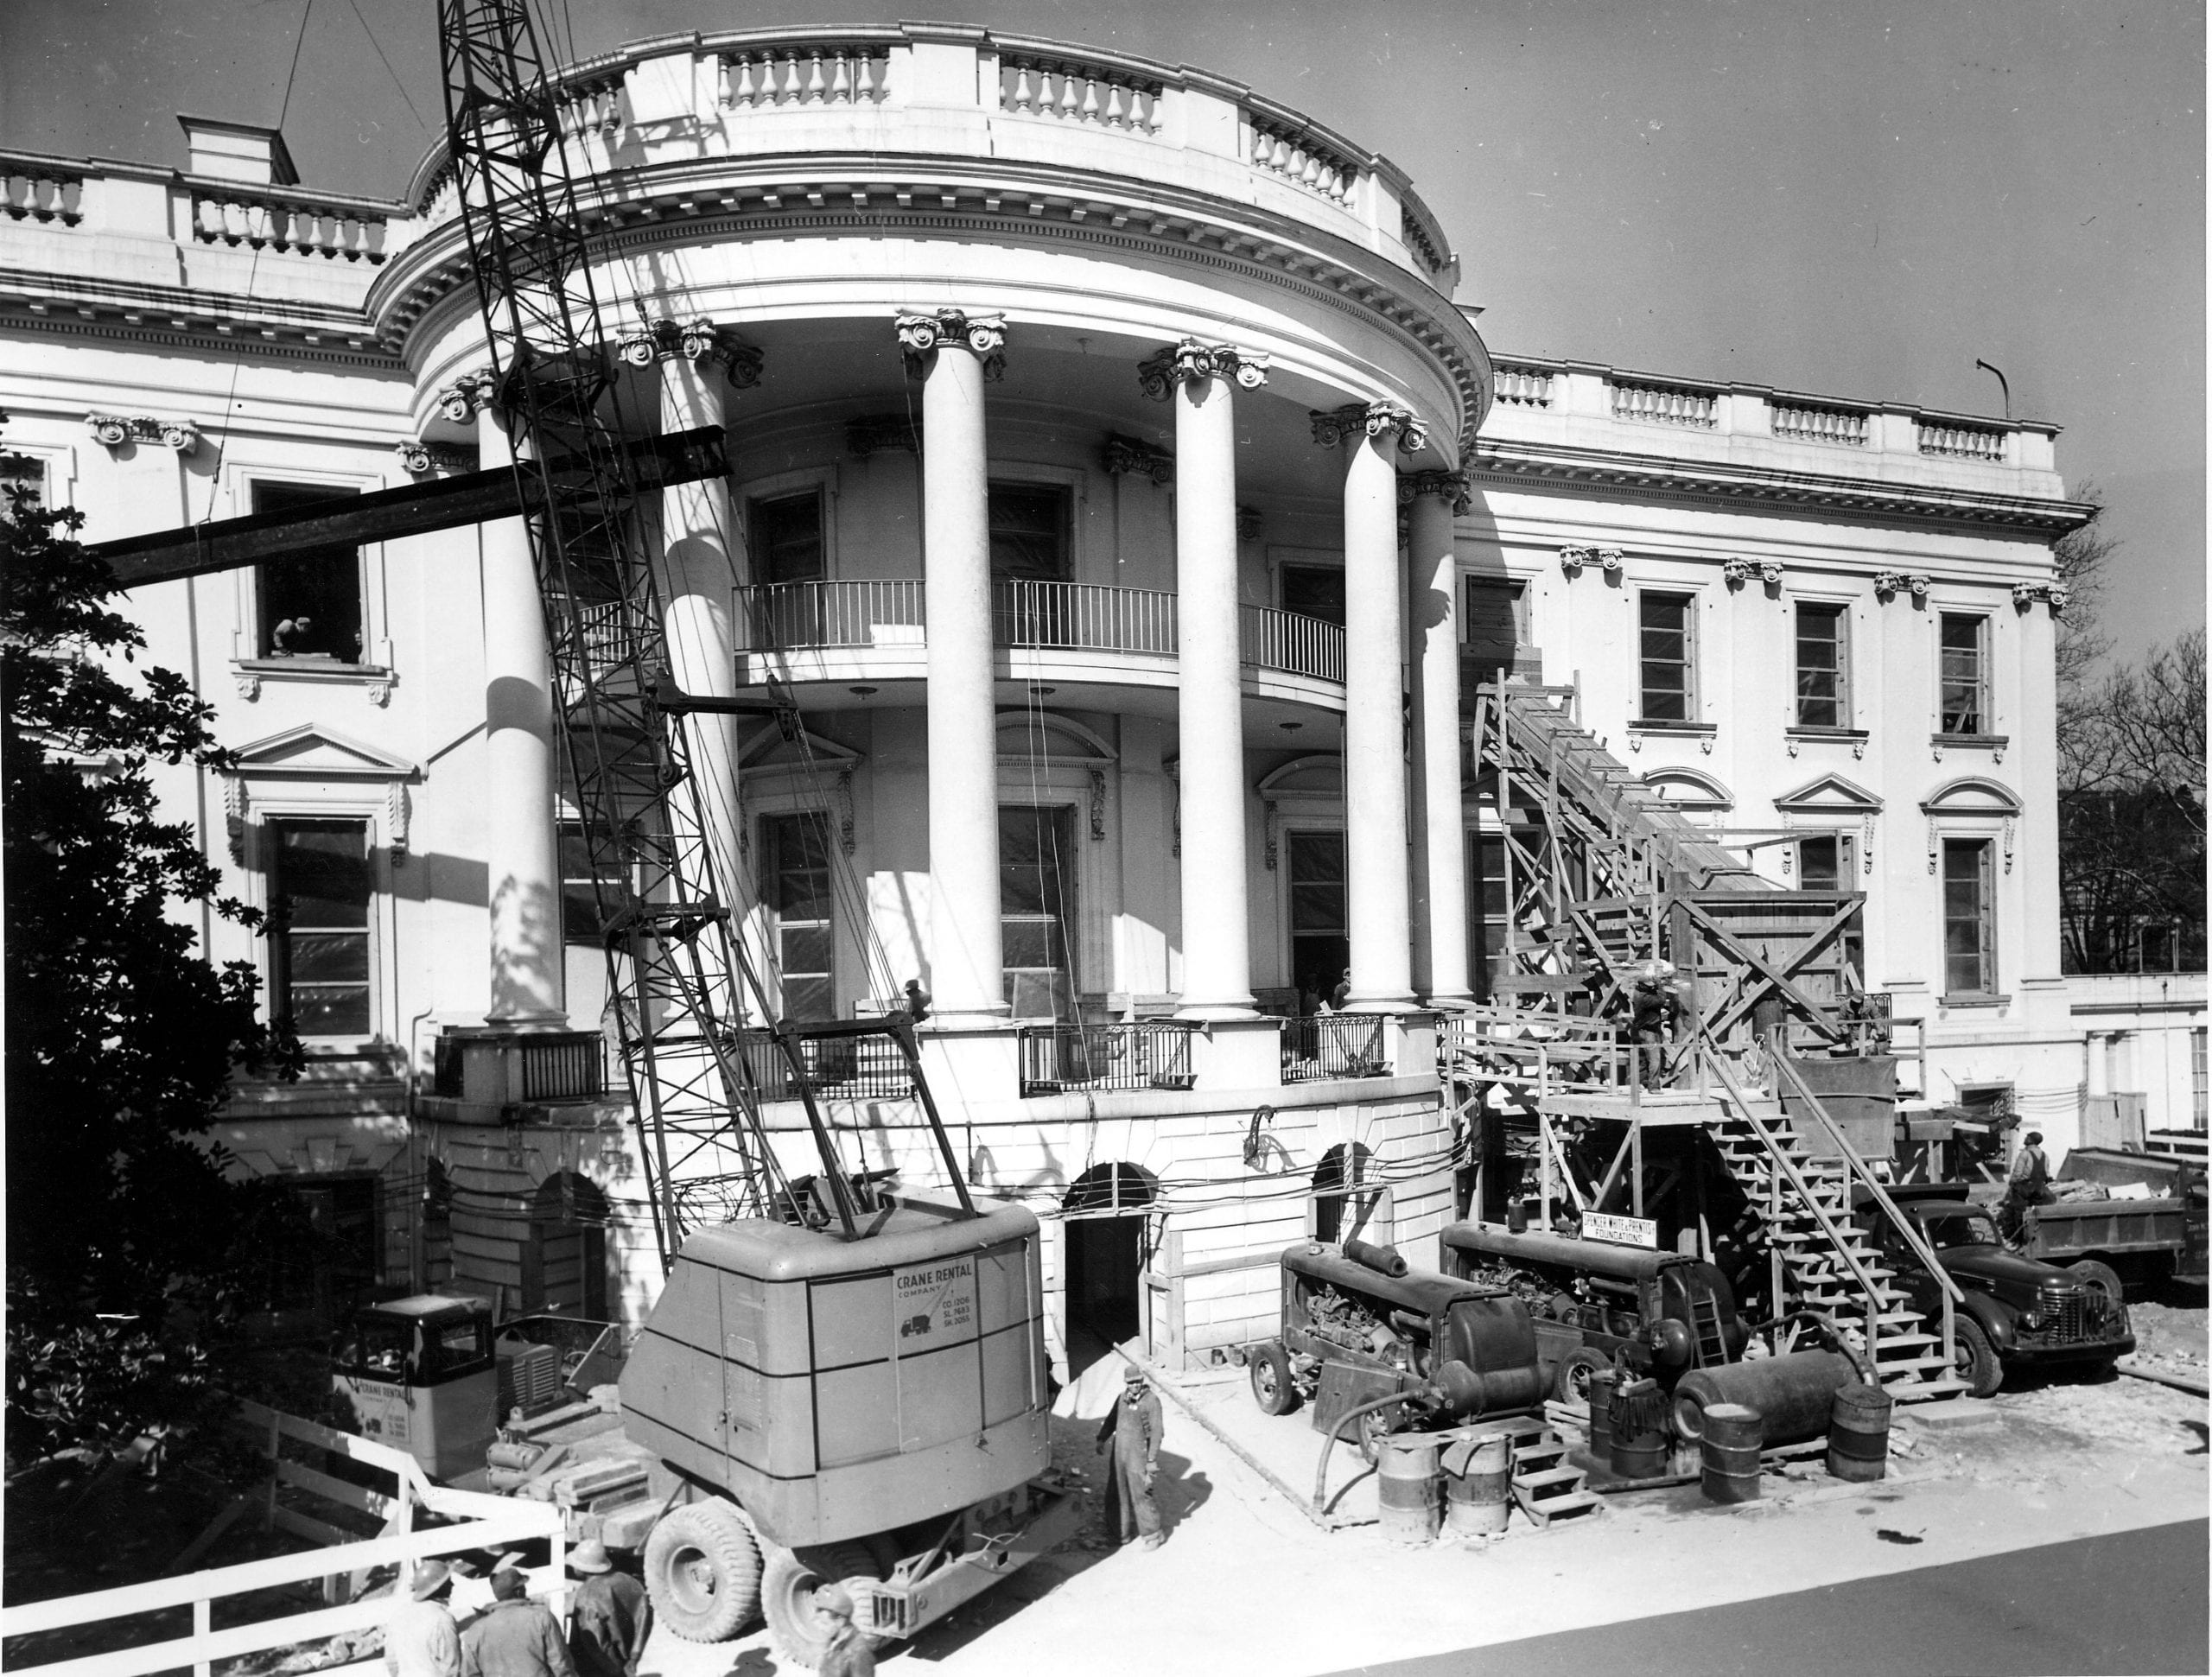 Removing Debris from the Renovation of the White House - February 27th, 1950